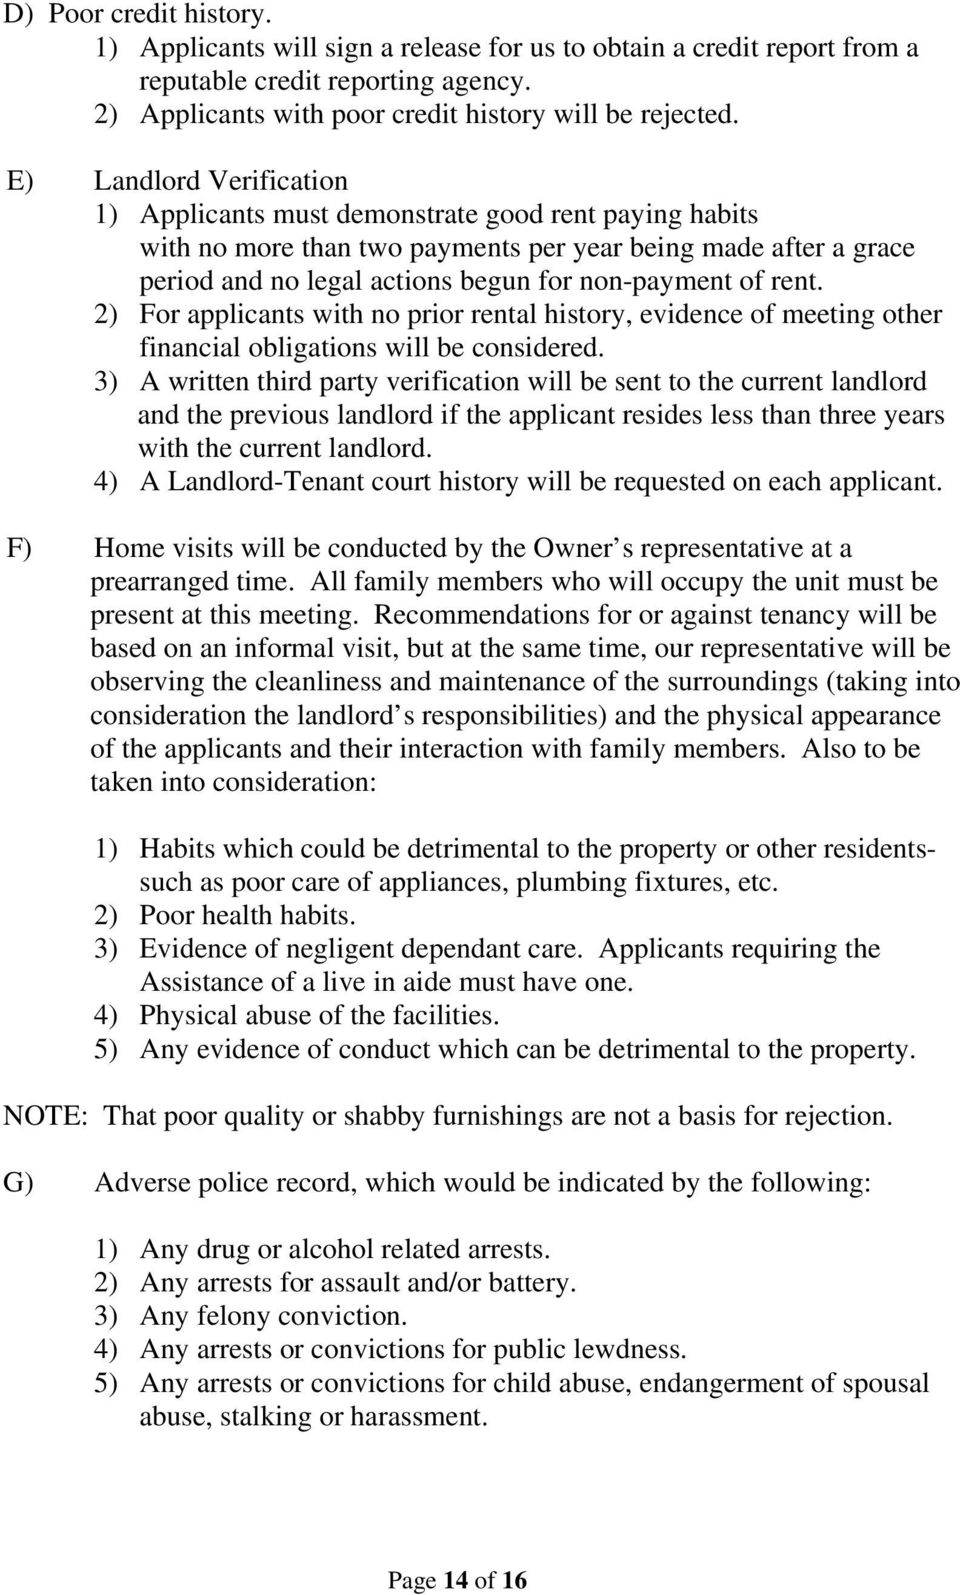 rent. 2) For applicants with no prior rental history, evidence of meeting other financial obligations will be considered.